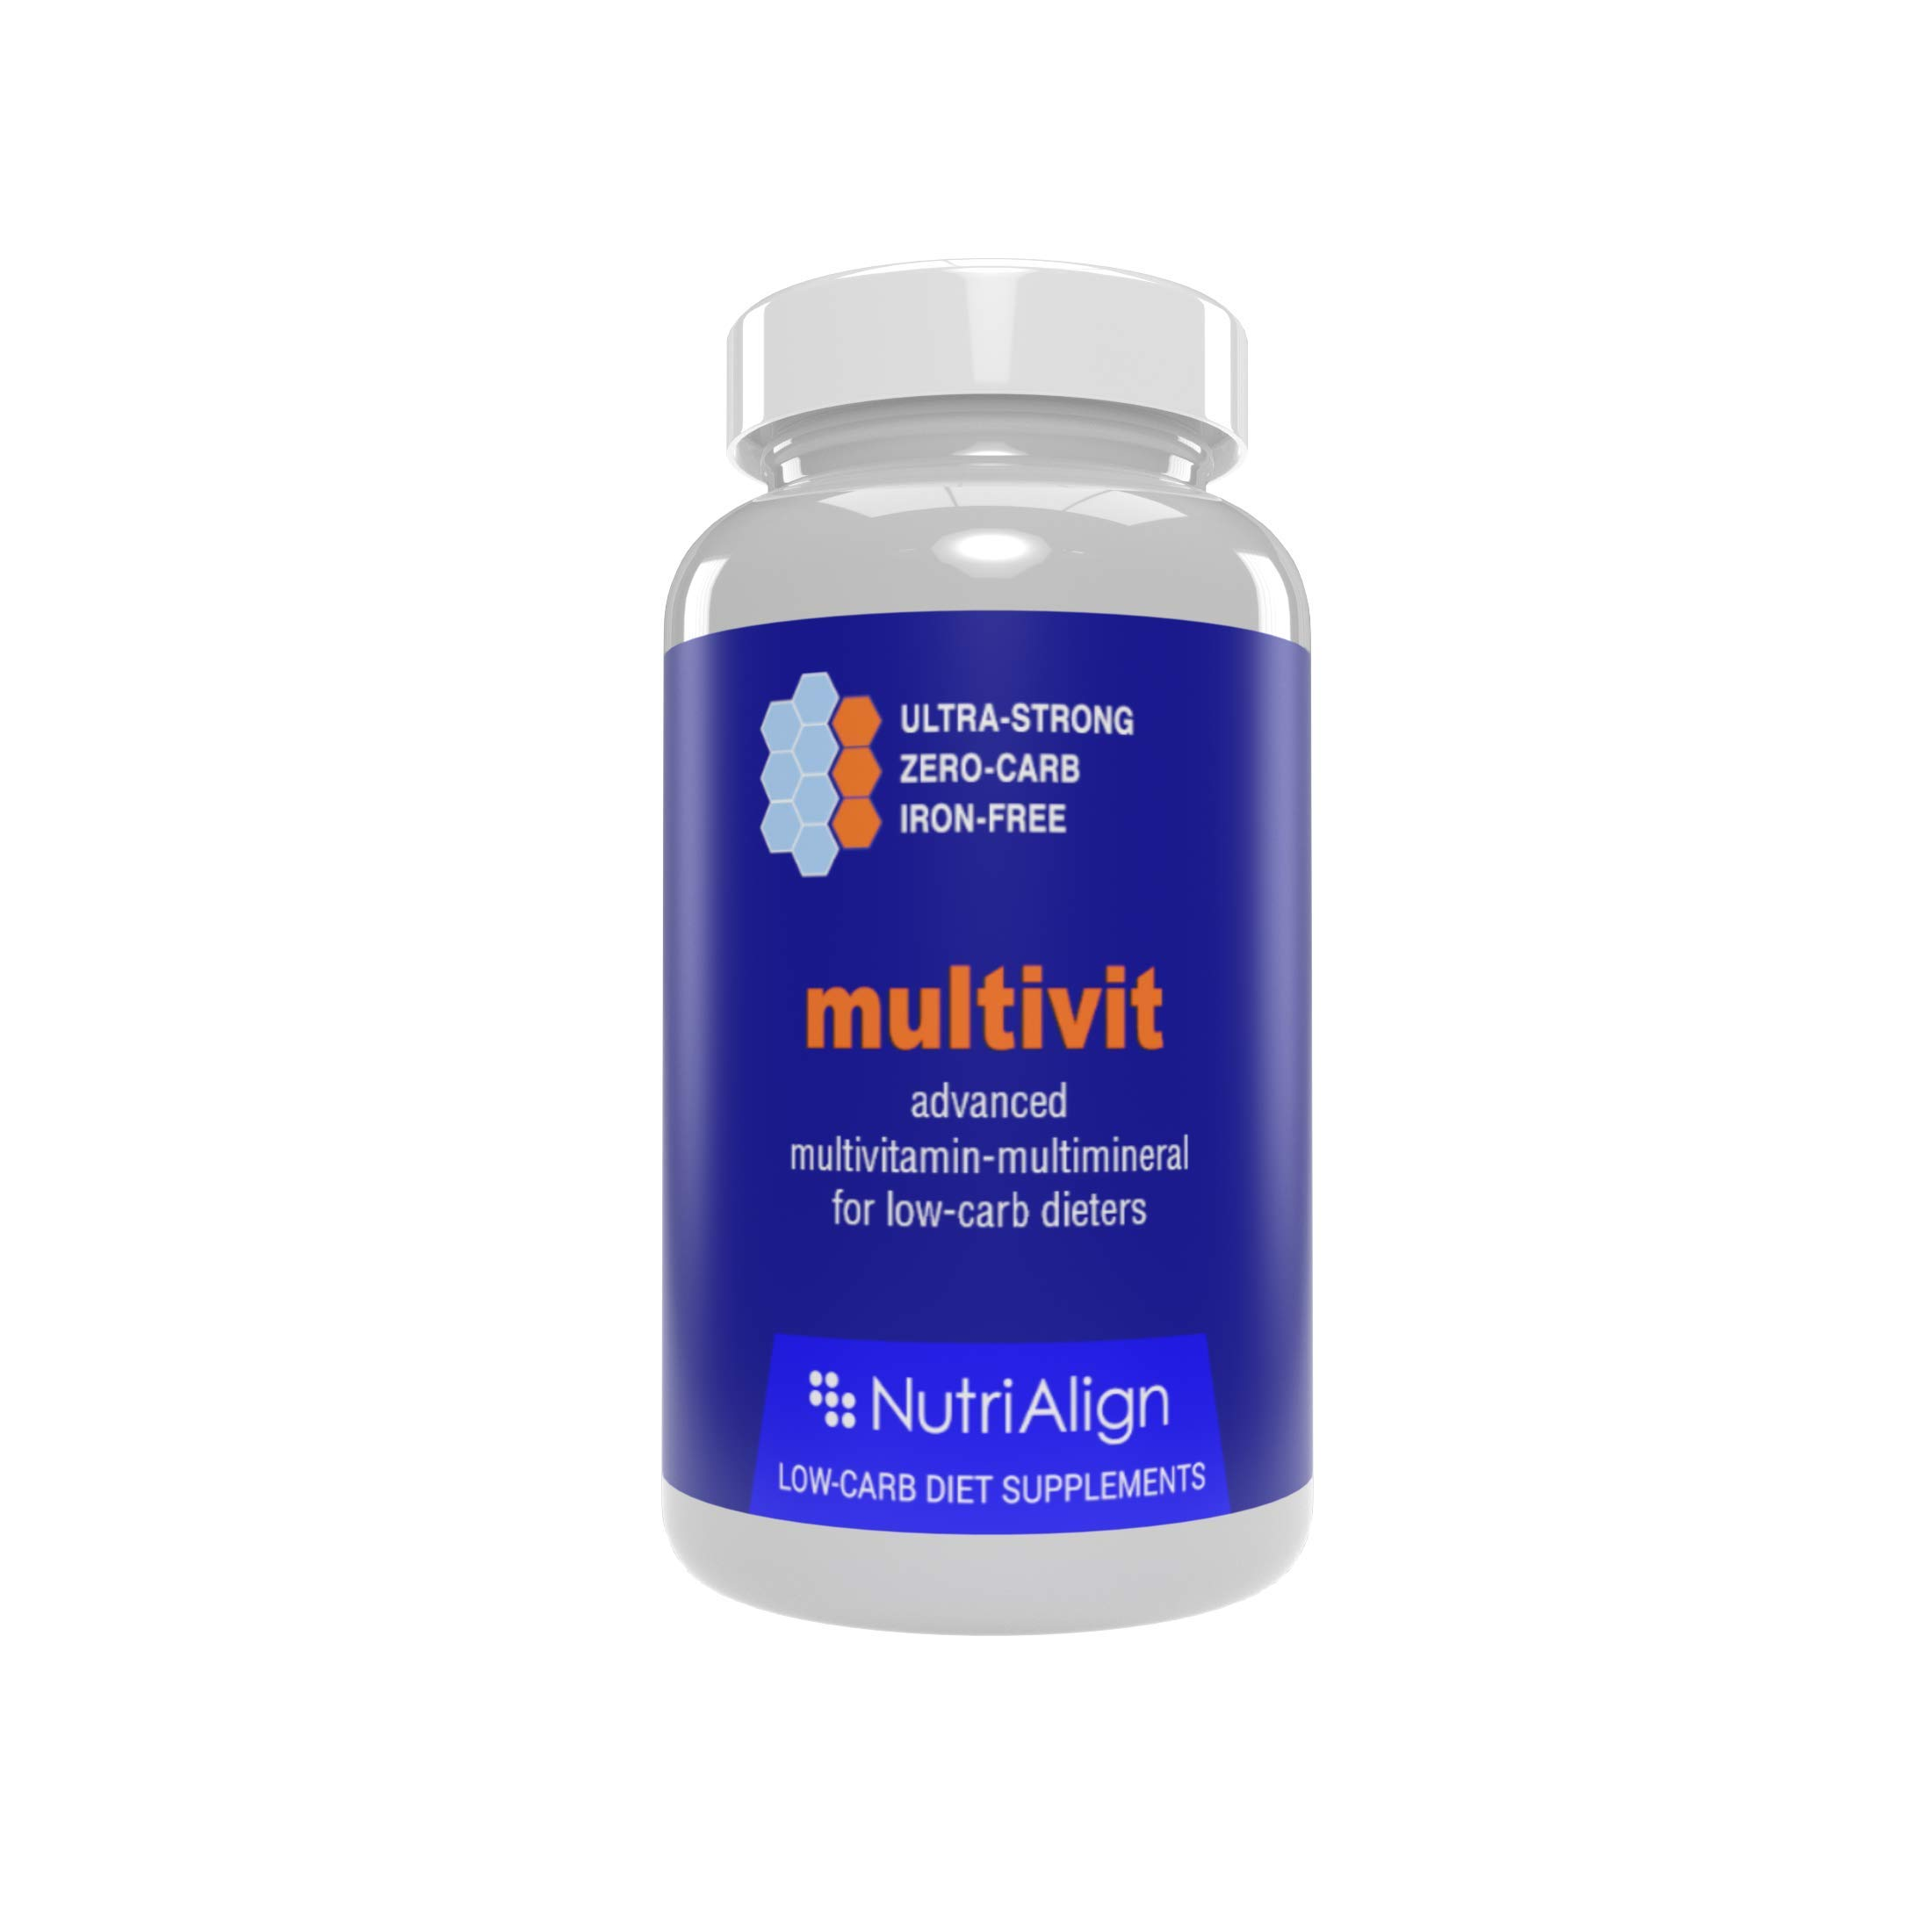 Nutri-Align Multivit: Low-Carb Diet Multivitamins. Optimized for Atkins, Keto, and similar low-carb diets. Extra-strong, iron-free, sugar-free, zero-carb. 90 capsules.